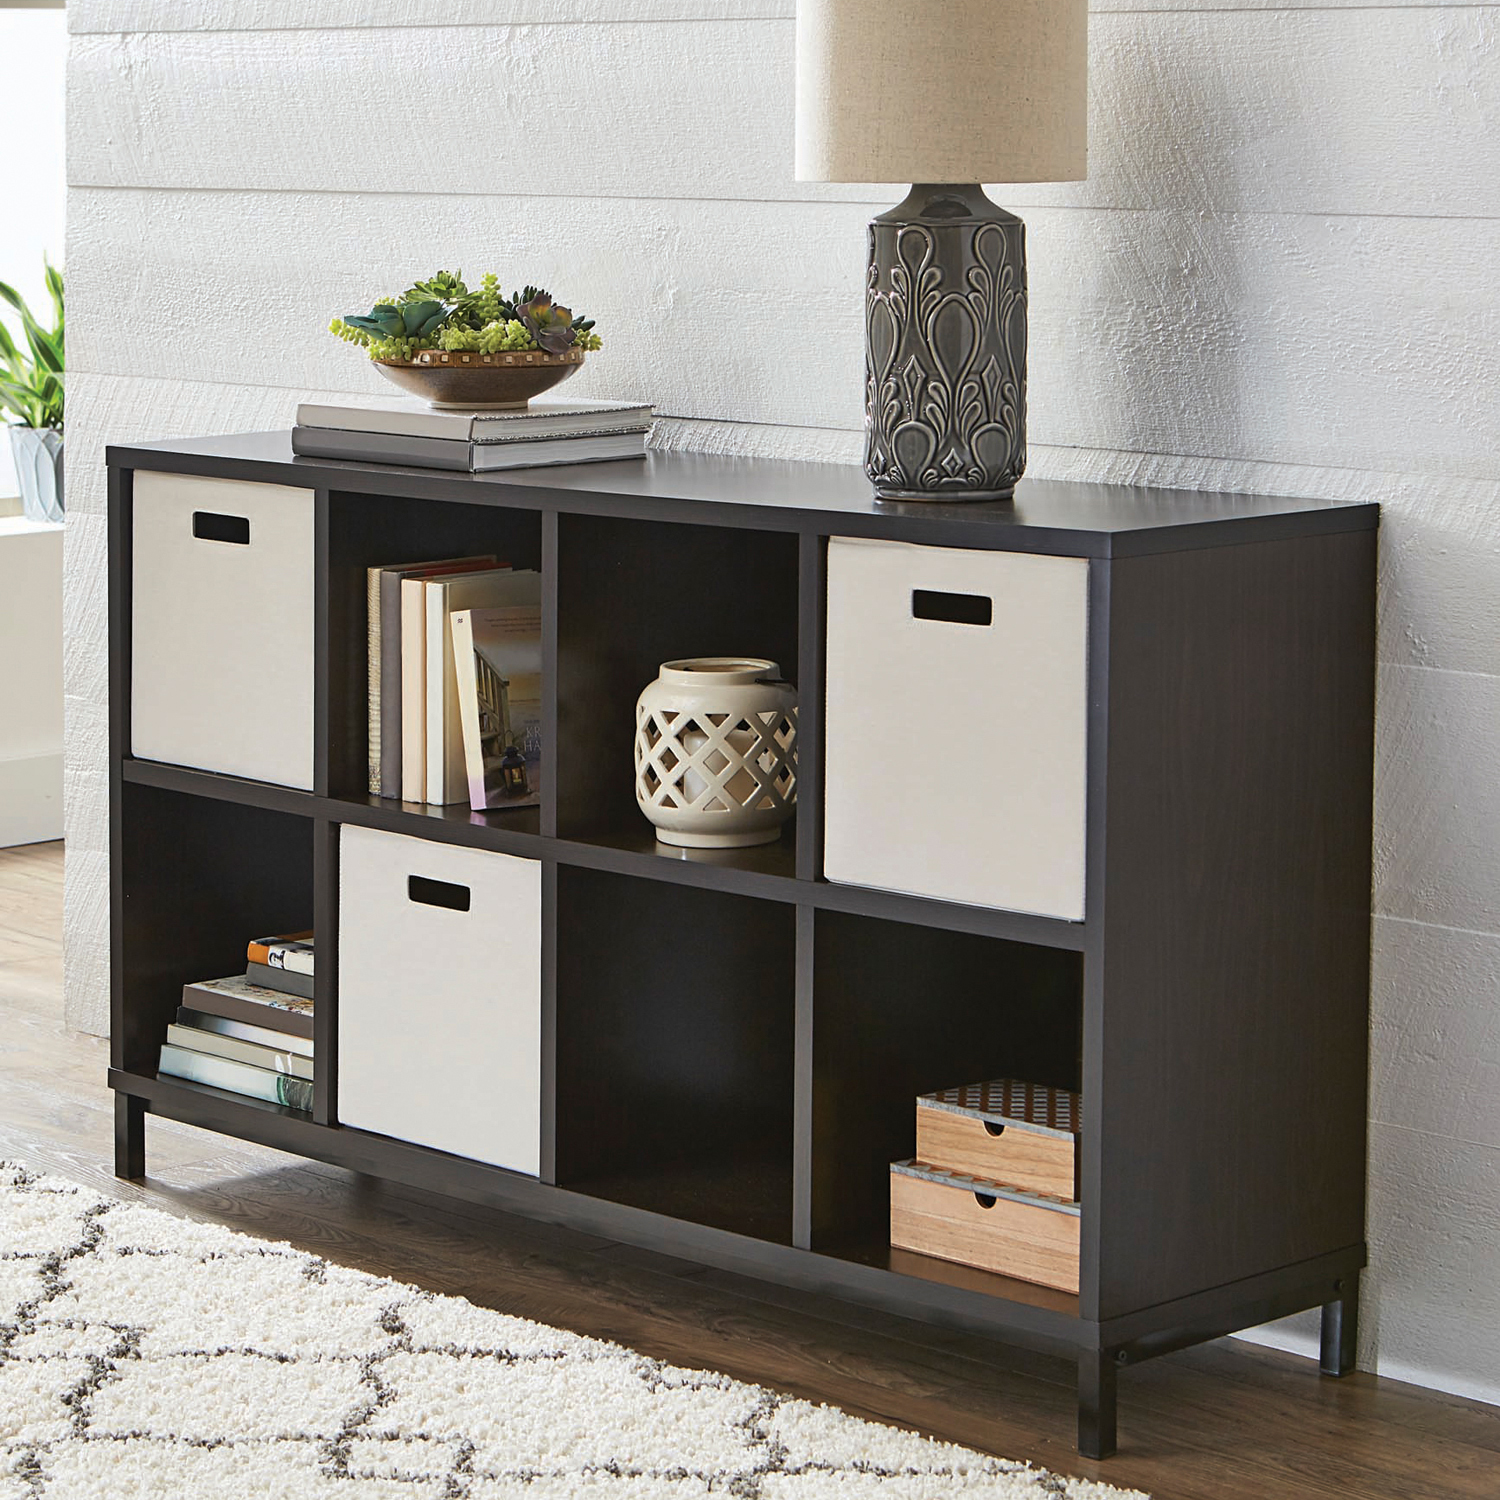 Better Homes and Gardens 8-Cube Storage Organizer with Metal Base, Multiple Finishes